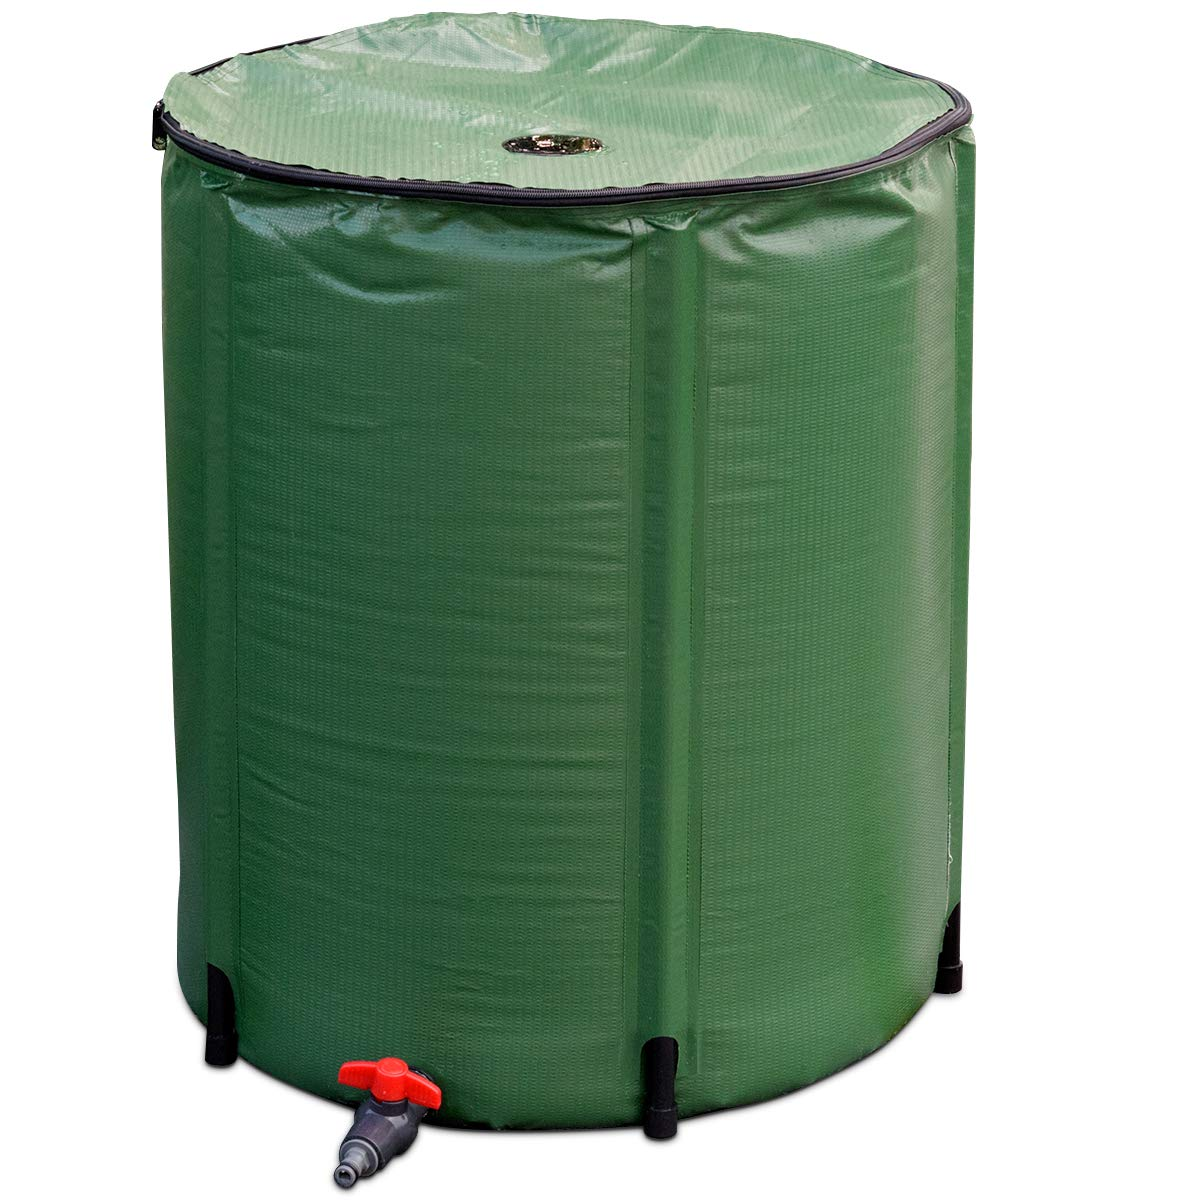 Goplus Portable Rain Barrel Water Collector Collapsible Tank w/Spigot Water Storage Container (53 Gallon) by Goplus